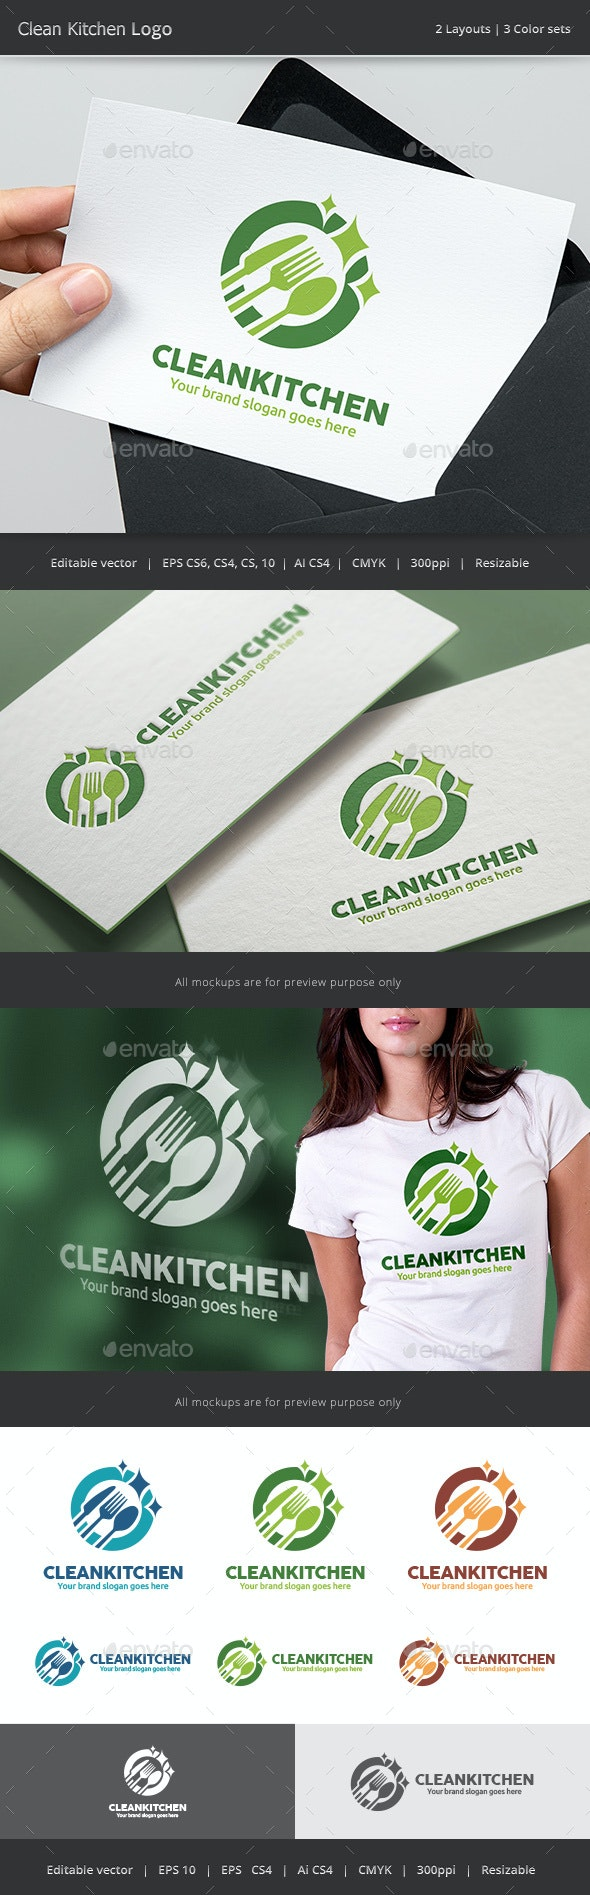 Clean Kitchen Logo - Vector Abstract